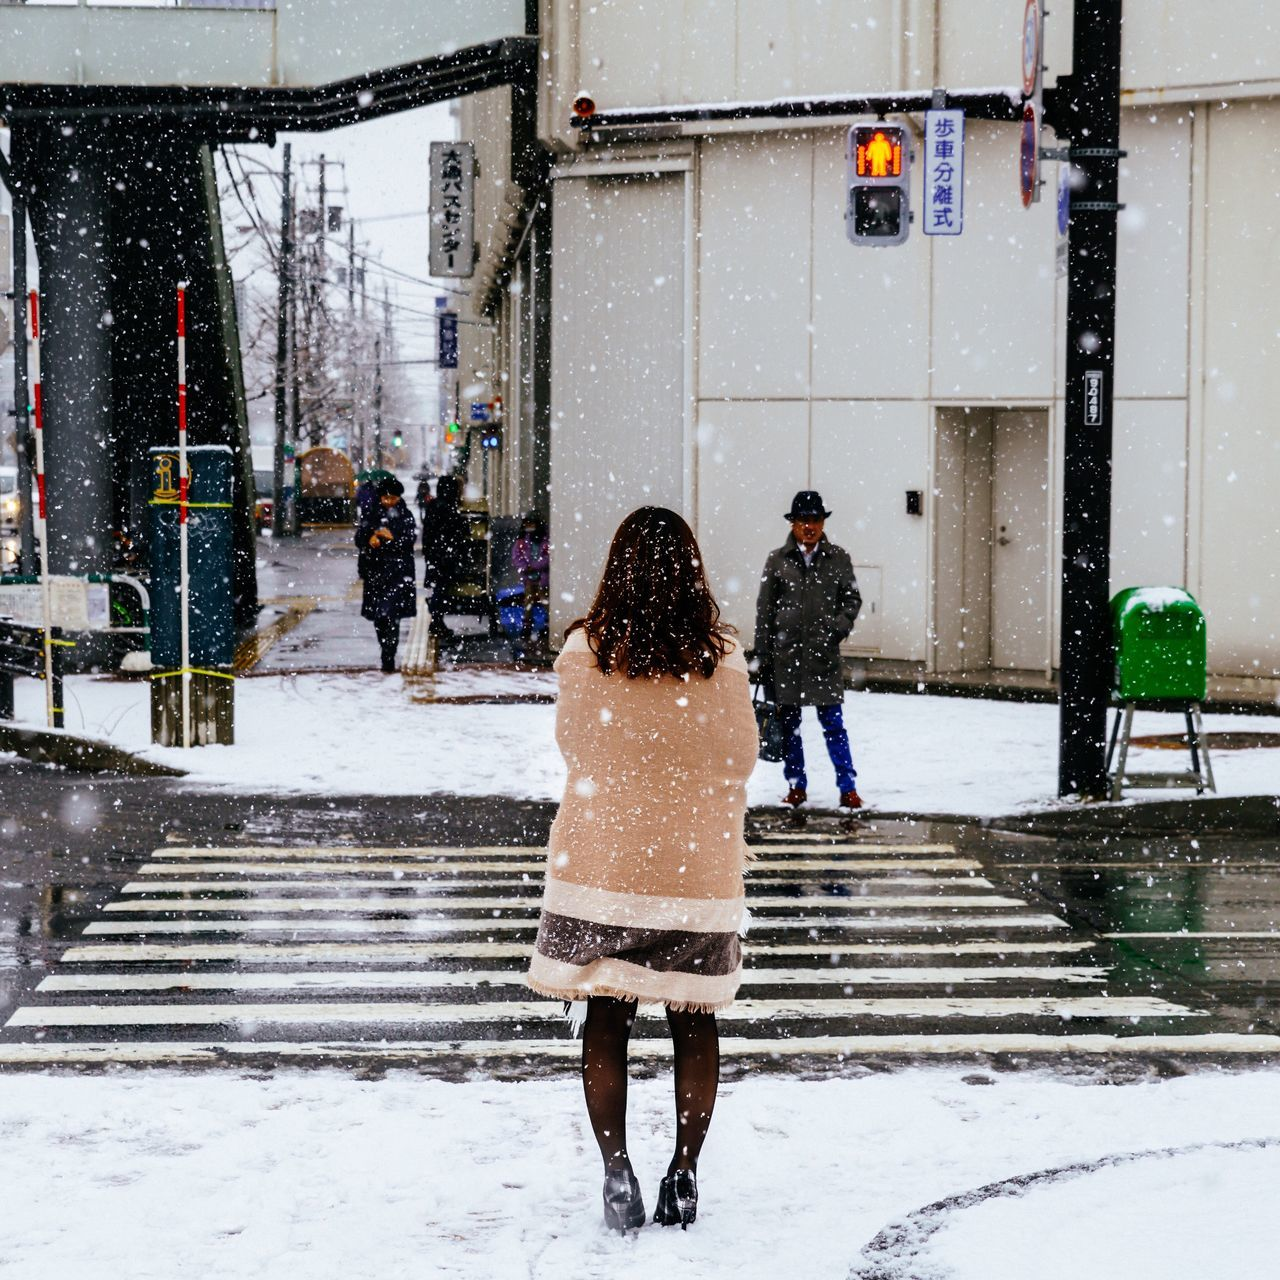 Waiting.... face to face Capture The Moment My Year My View From My Point Of View My Traveling Photography My Street Photography Snow Winter Street Photography Cold Temperature Two People Snowing Sapporo City Street Urban Exploration Urban Photography Sapporo